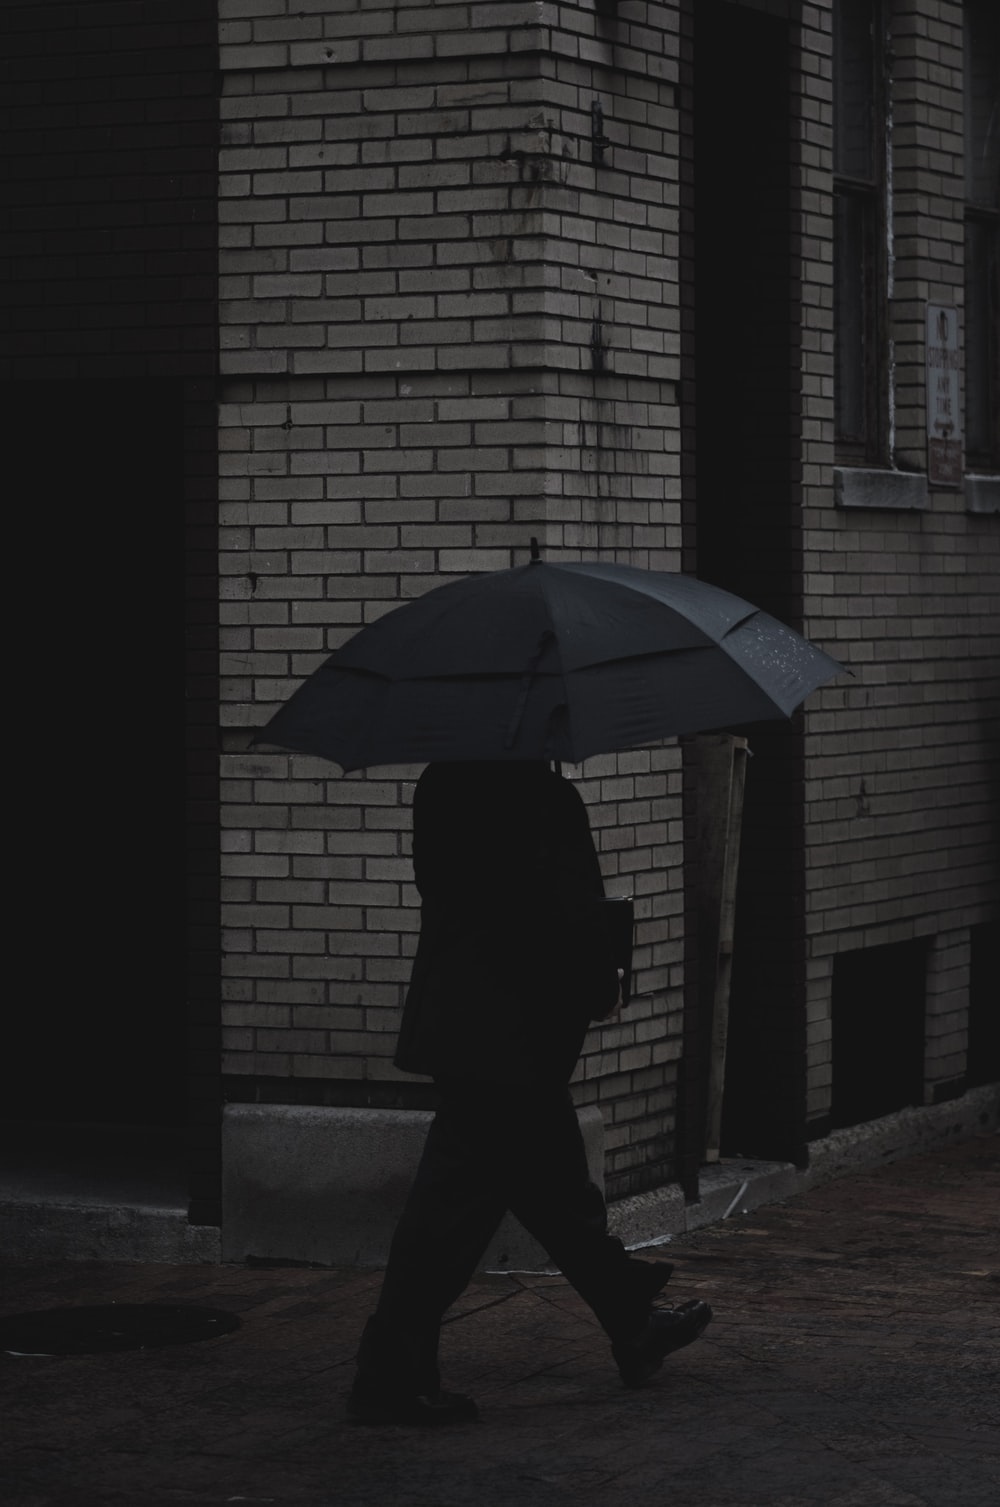 Person holding umbrella walking on concrete pavement near building